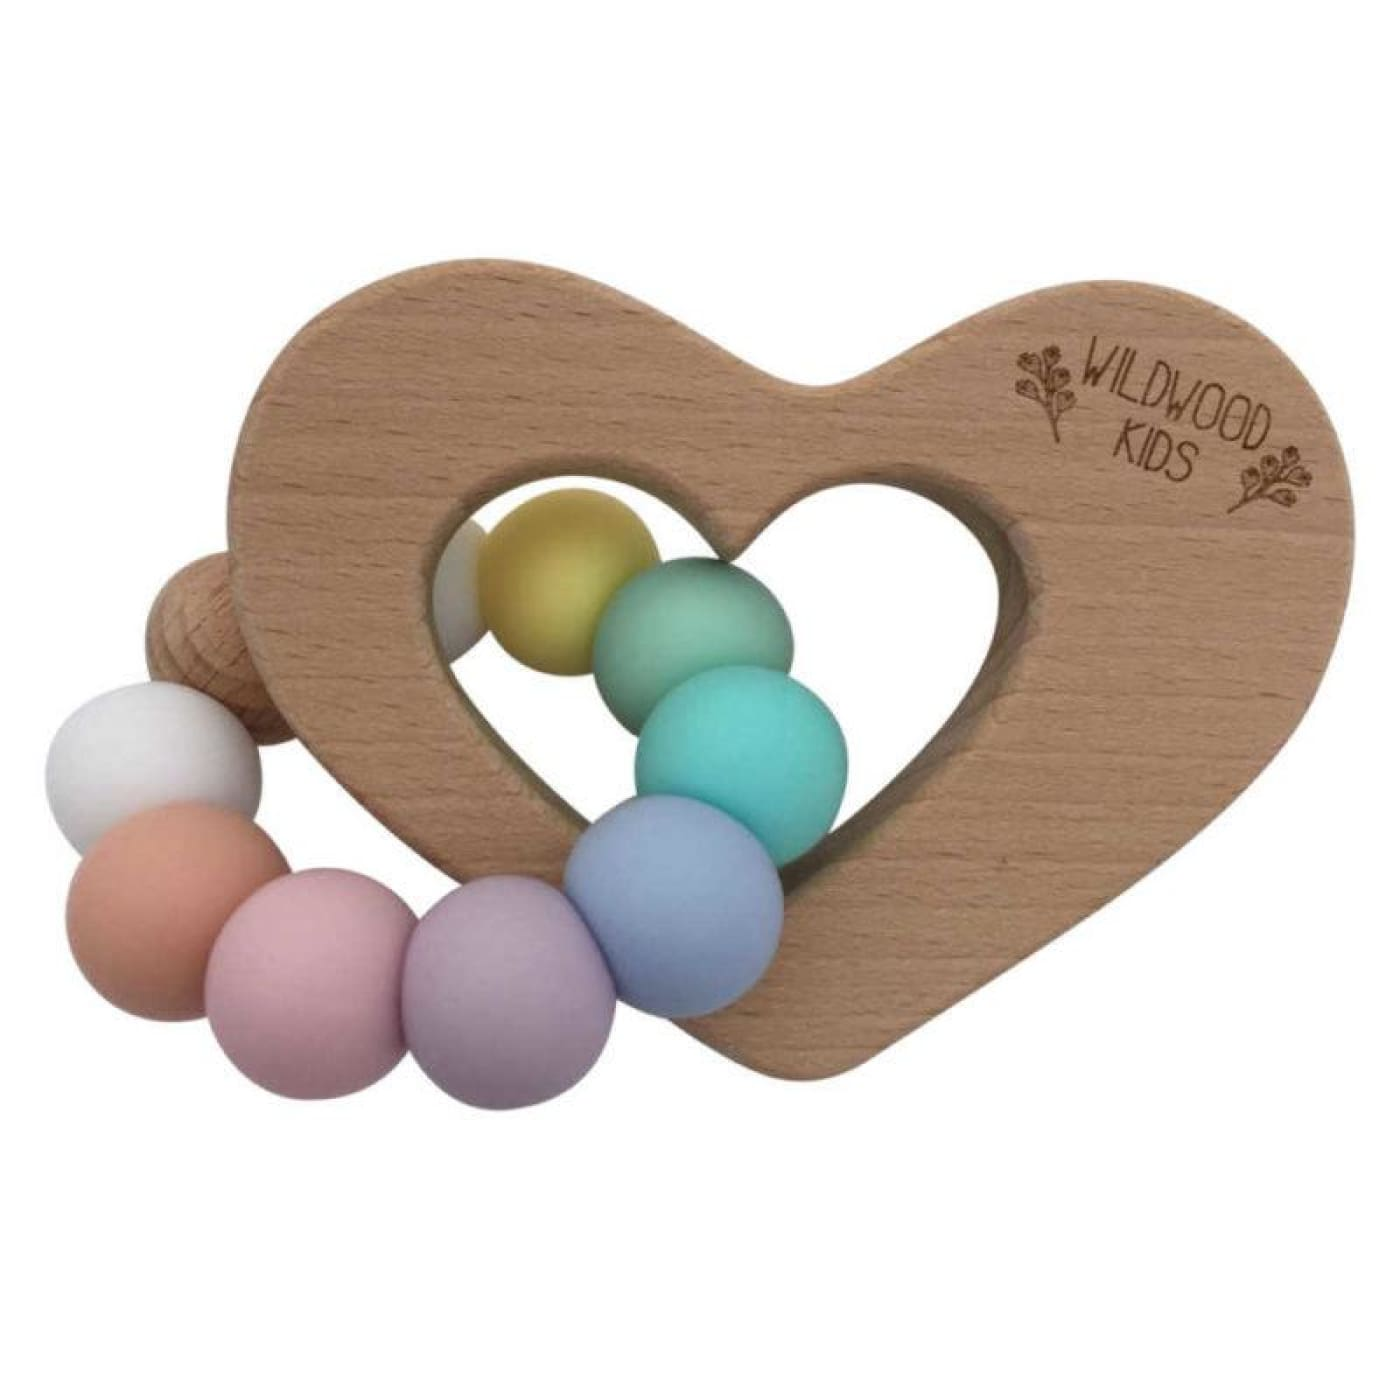 Wildwood Kids Teether - Heart Rainbow - NURSING & FEEDING - TEETHERS/TEETHING JEWELLERY